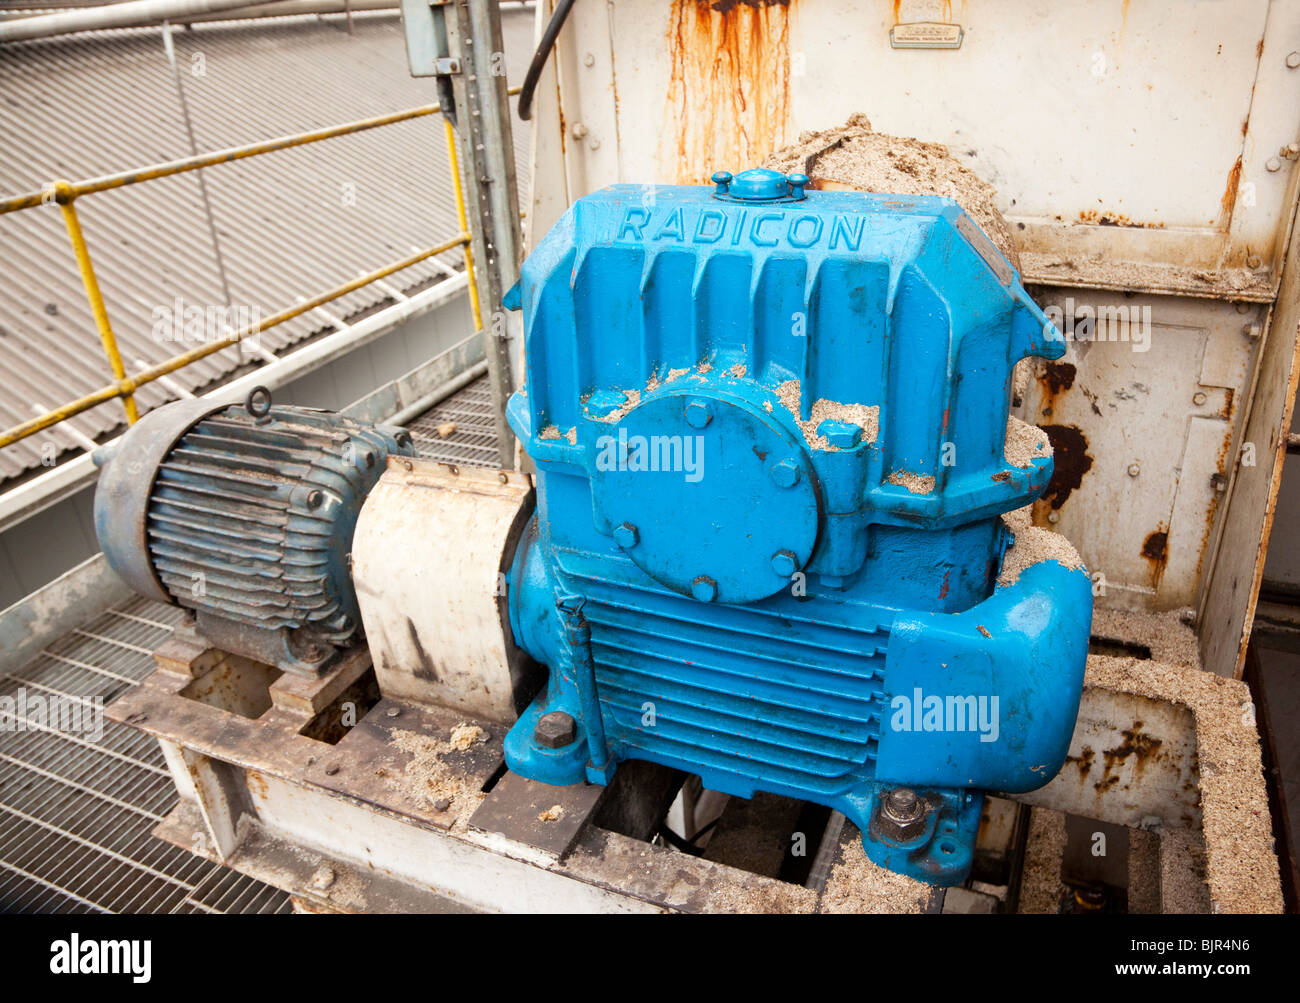 electric motor gearbox on machinery at a factory in the UK - Stock Image